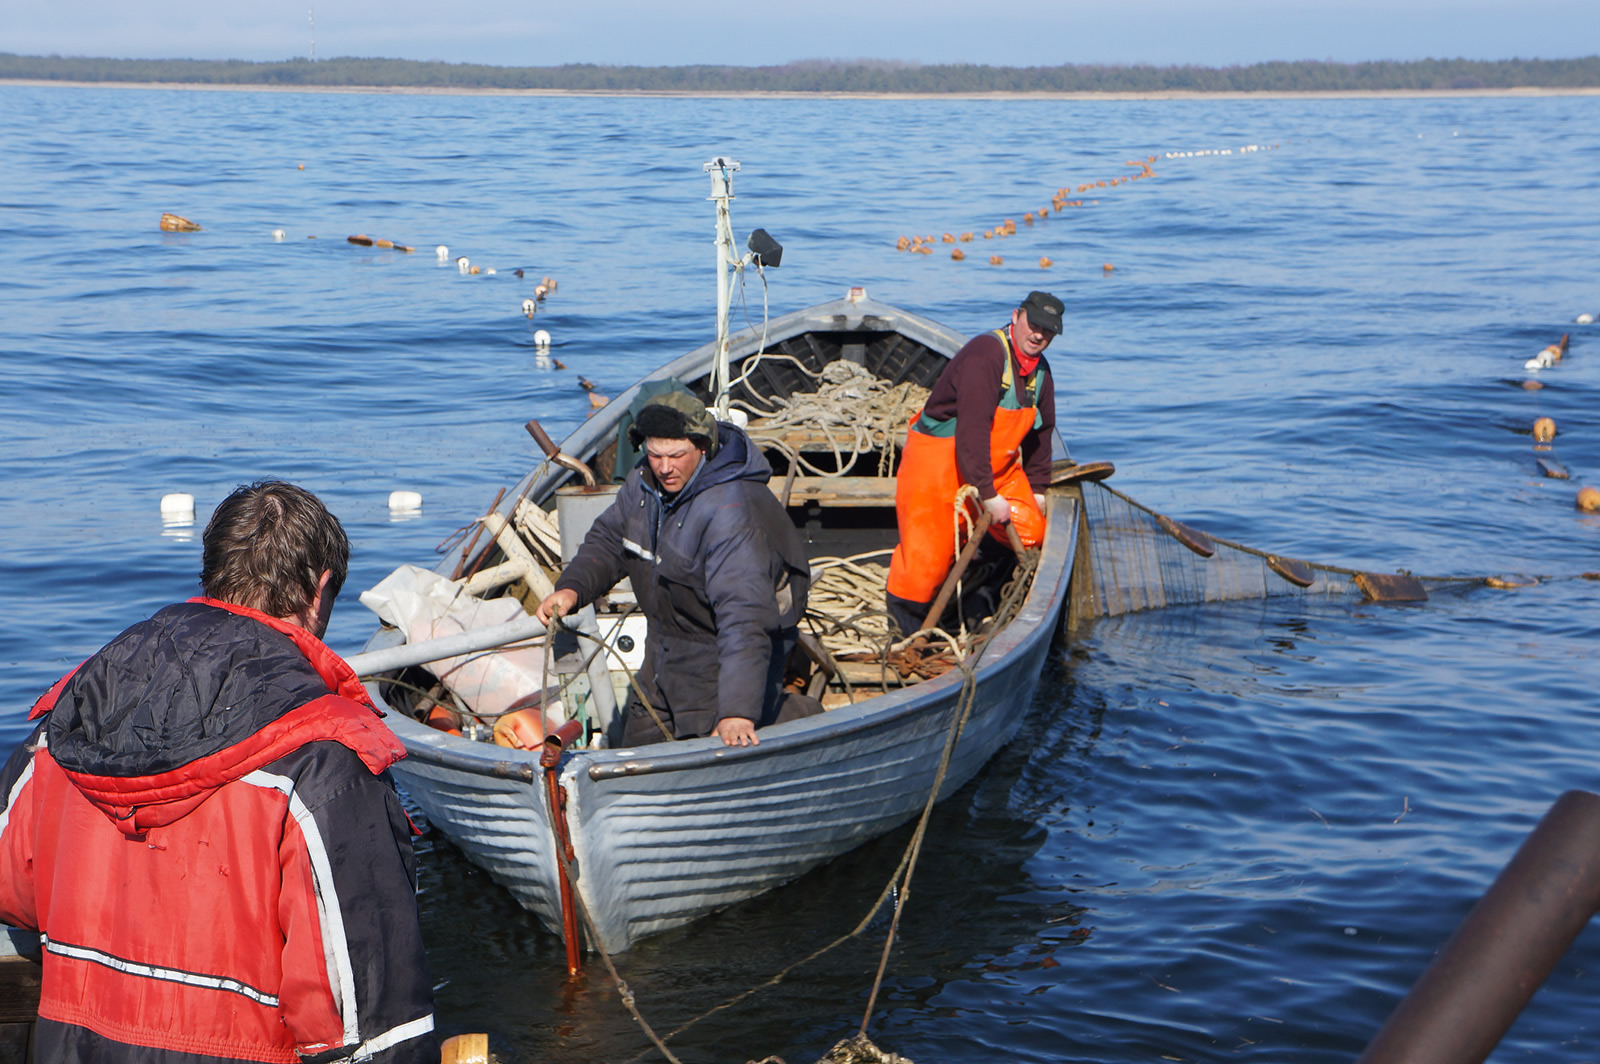 Kihnu Island, Estonia_putting in Baltic herring fyke nets.J.Plaan